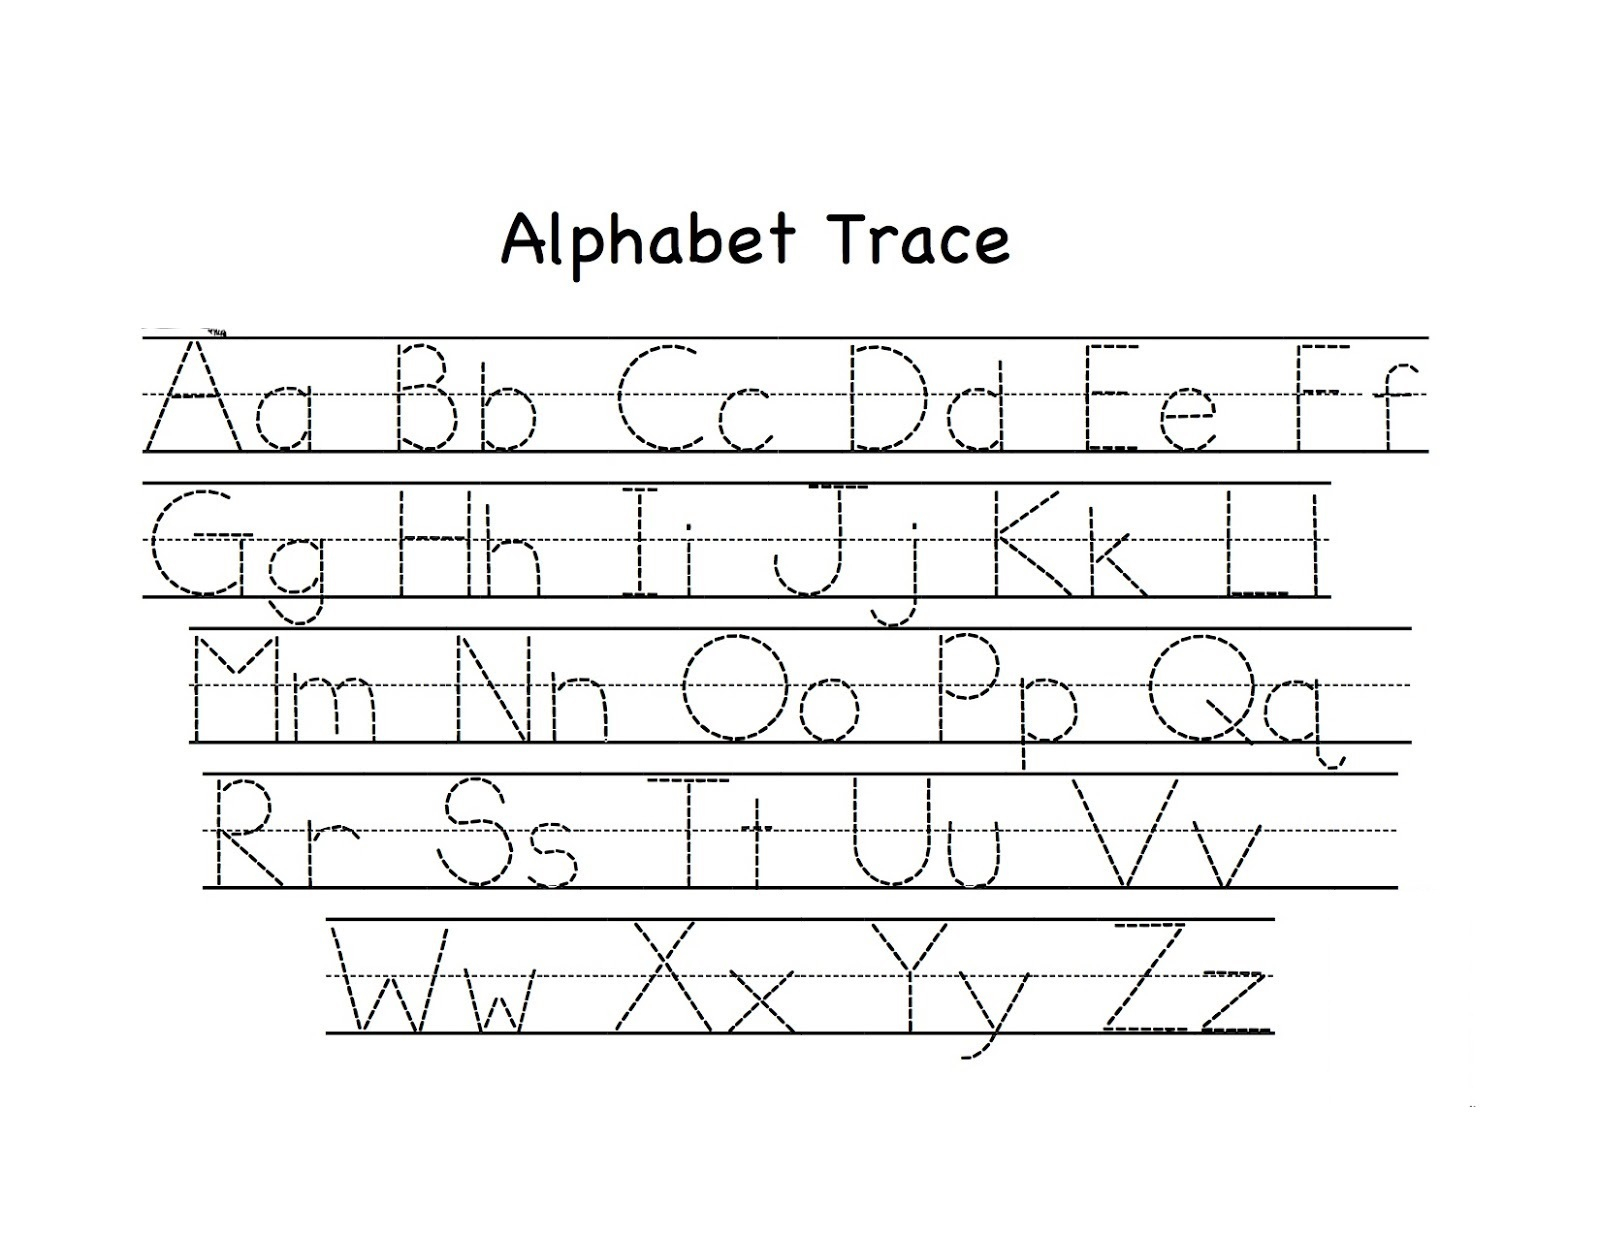 Preschool Tracing Worksheets - Best Coloring Pages For Kids inside Alphabet Tracing For Toddlers